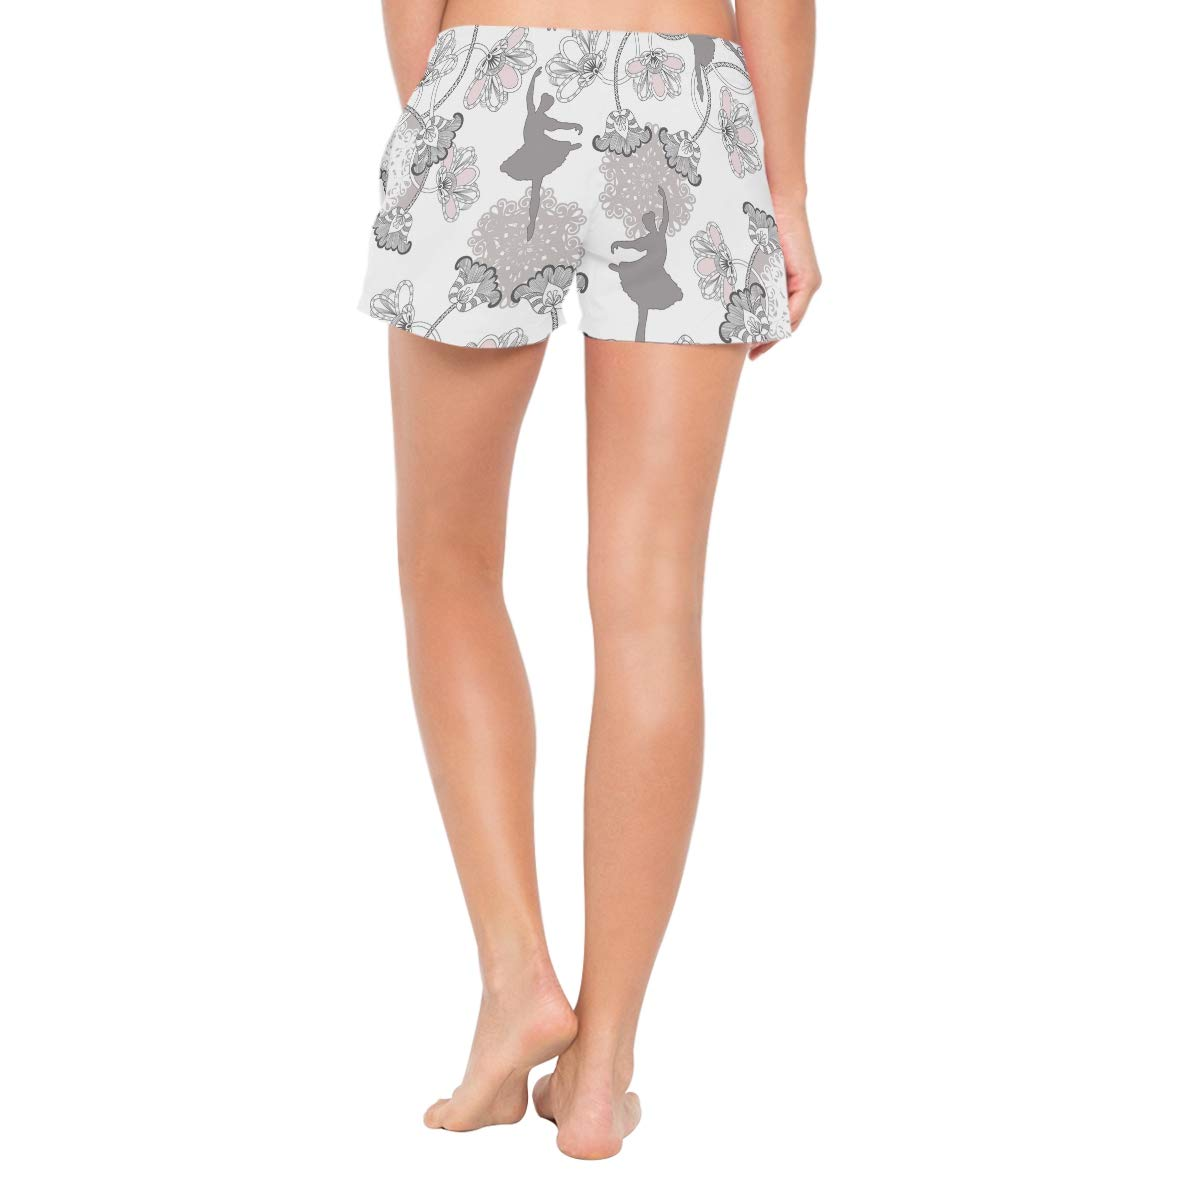 Ballet Lace Womens Sport Beach Swim Shorts Board Shorts Swimsuit with Mesh Lining